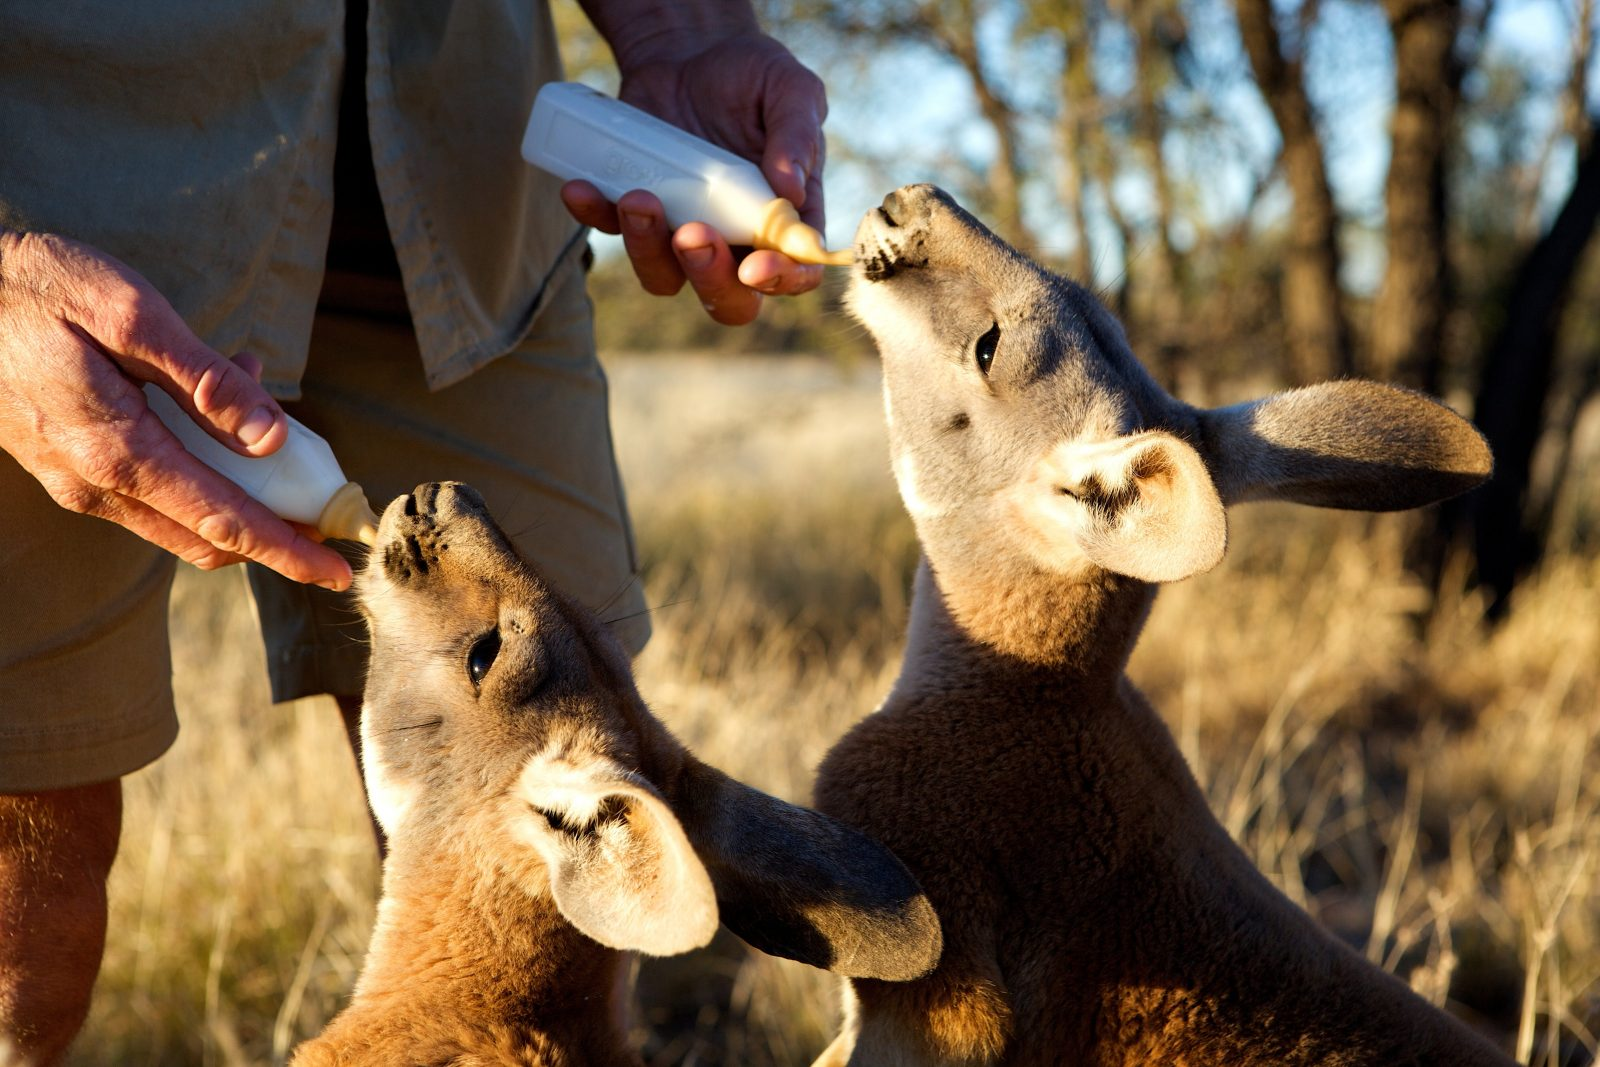 Two kangaroo's being bottle-fed by a person